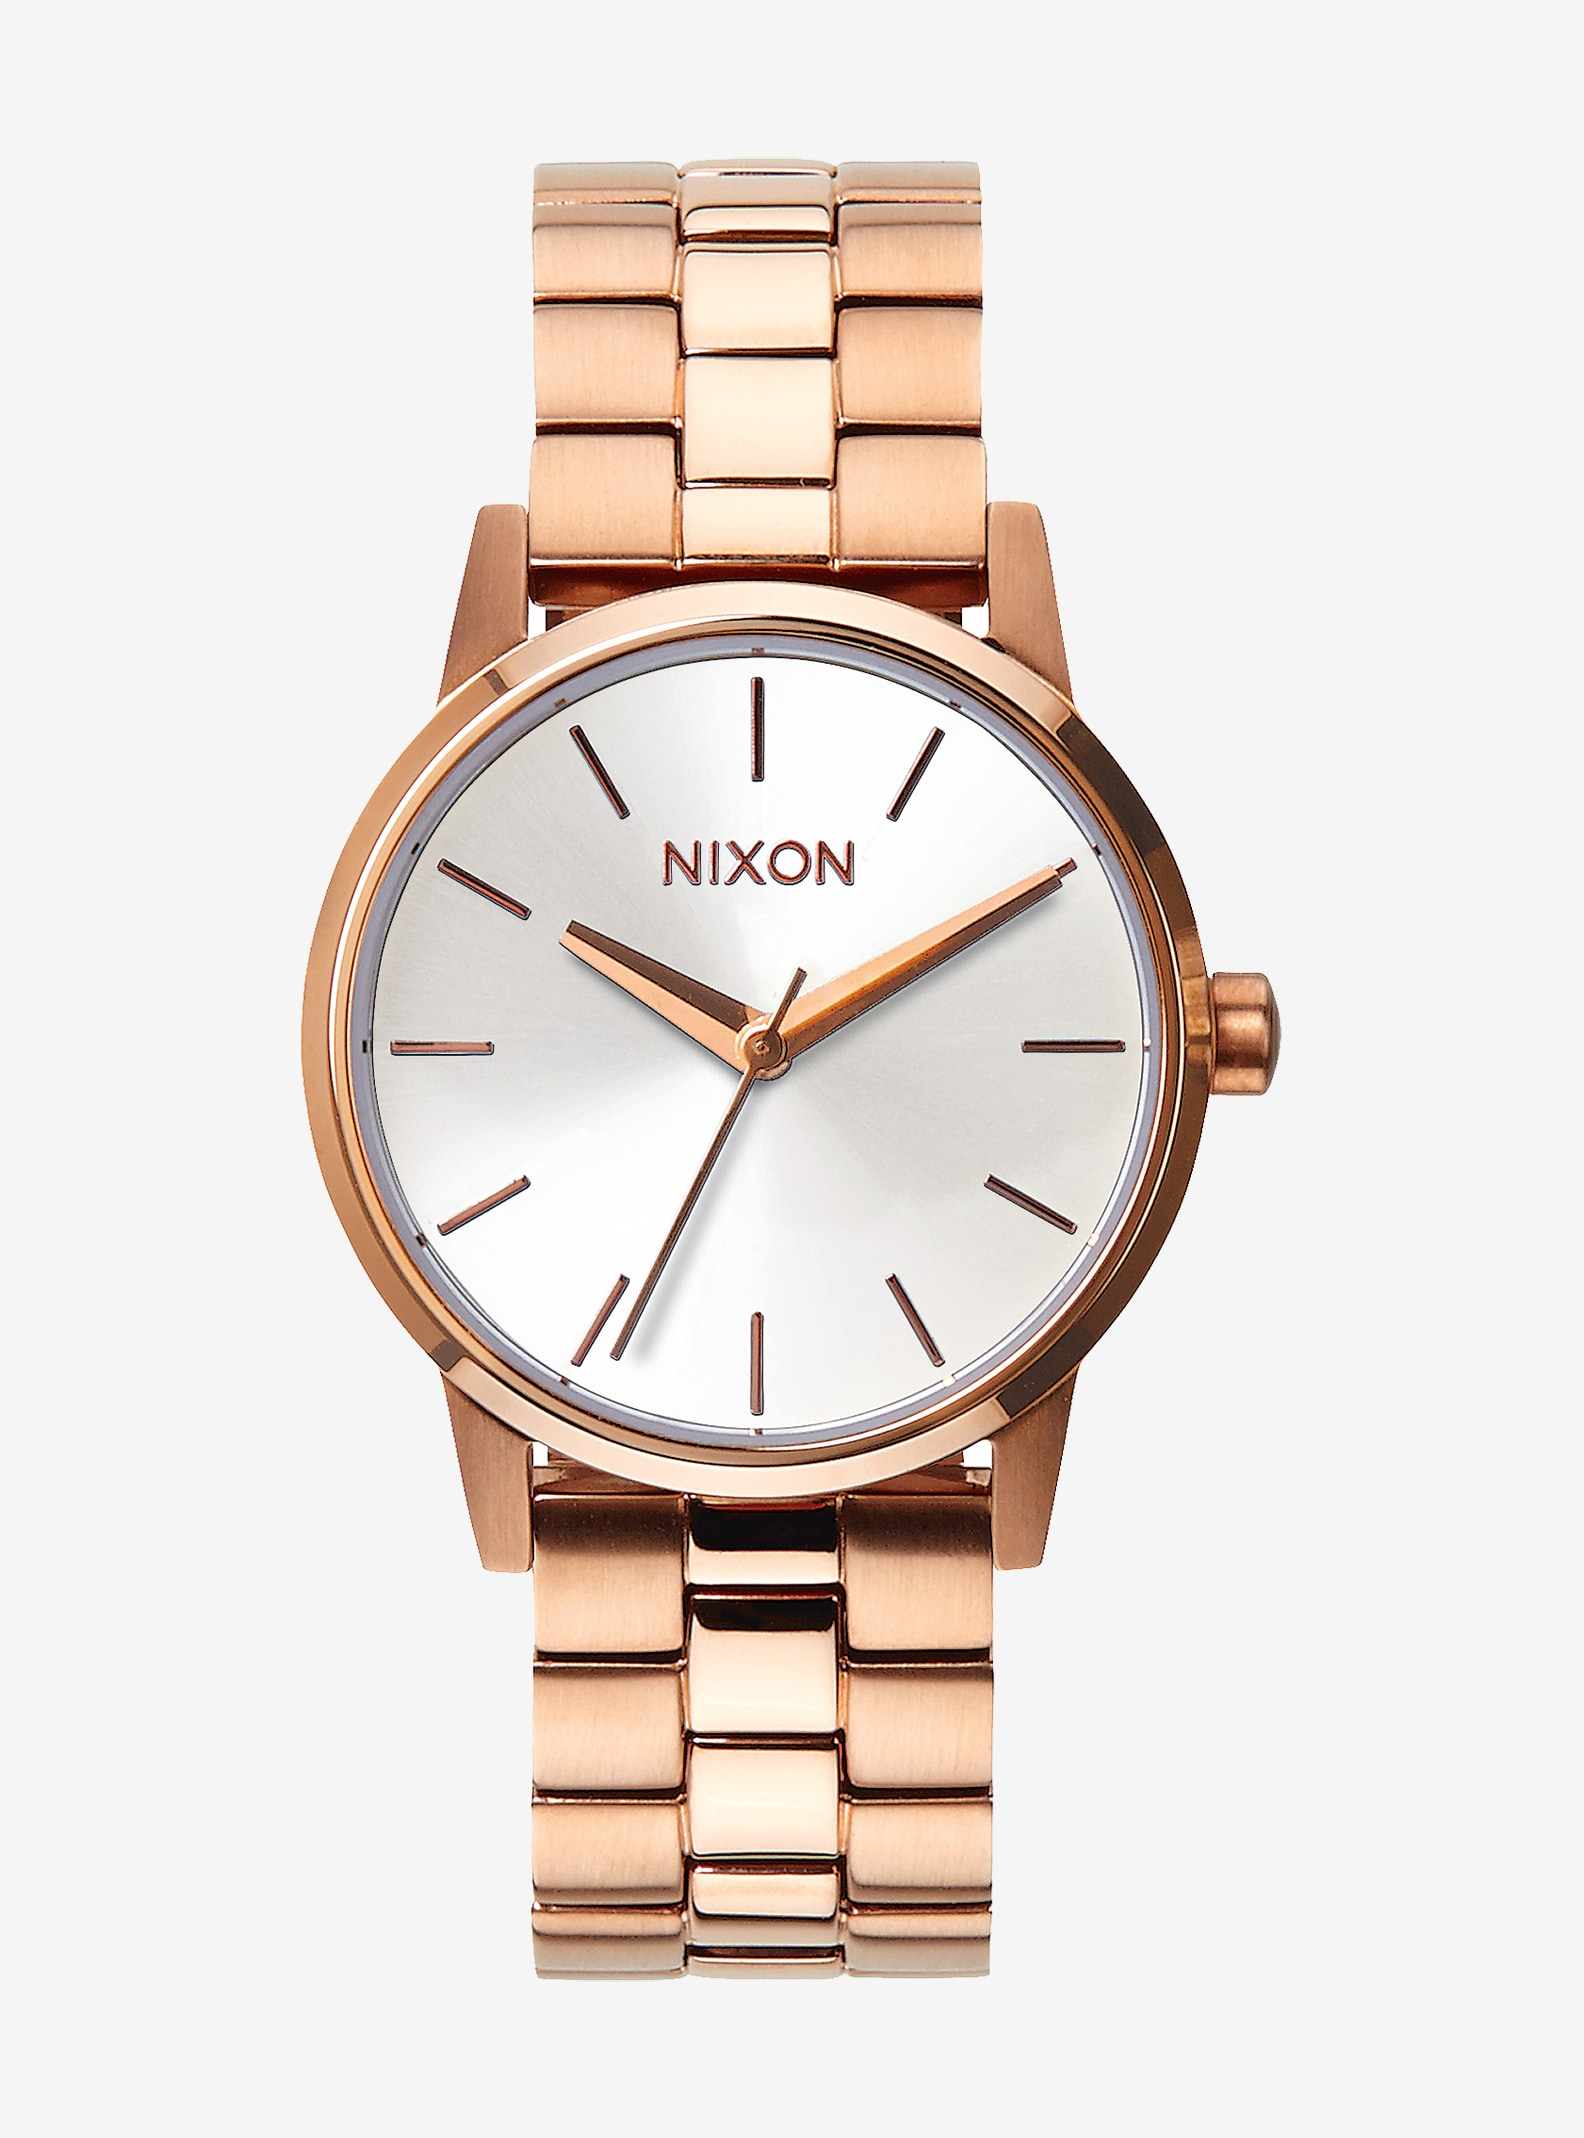 Nixon Small Kensington Watch shown in Rose Gold / White